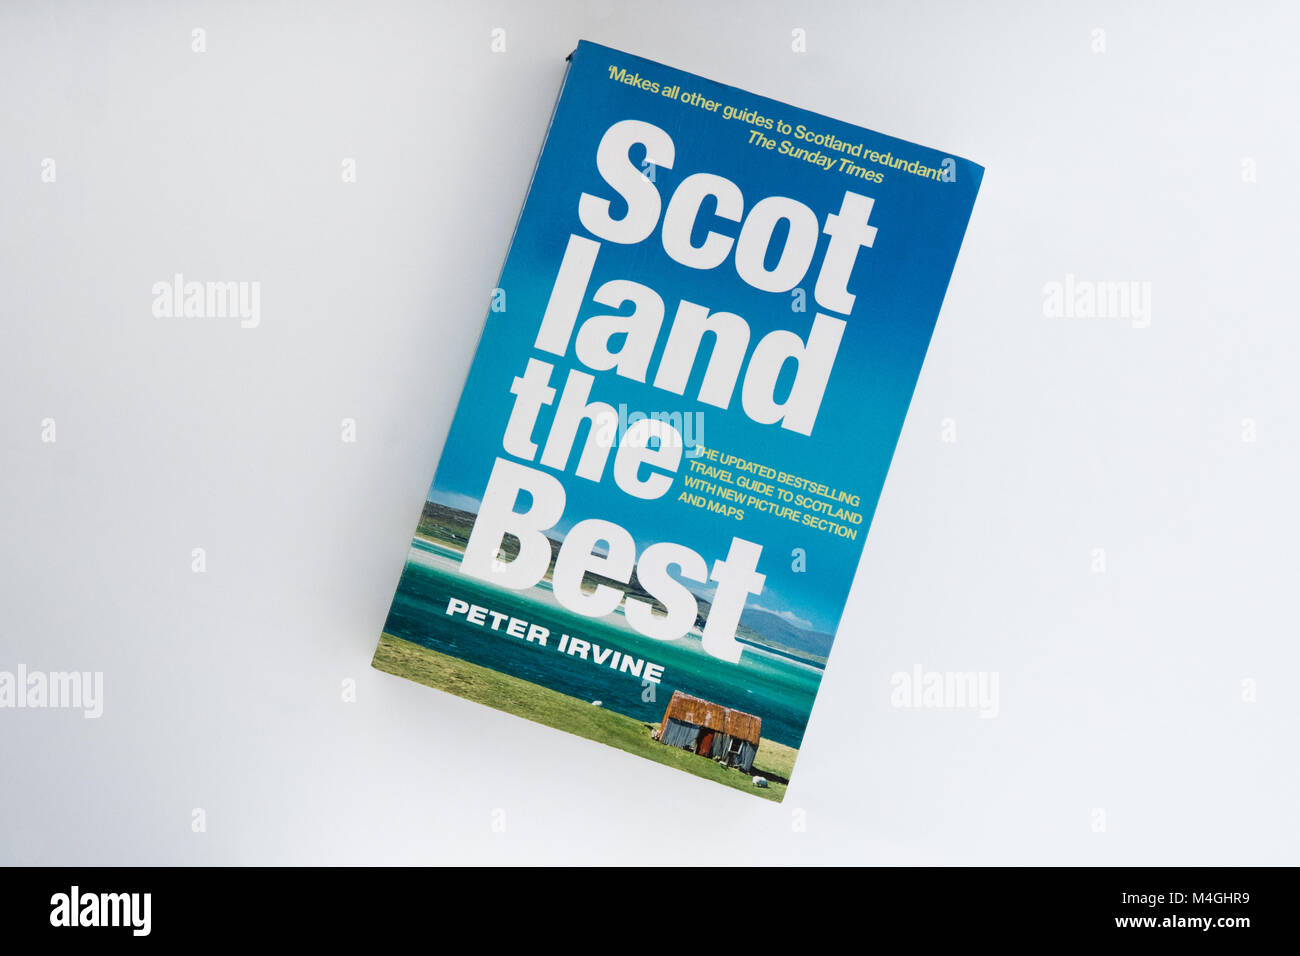 Scotland the Best guide to  Scotland by Peter Irvine - Stock Image